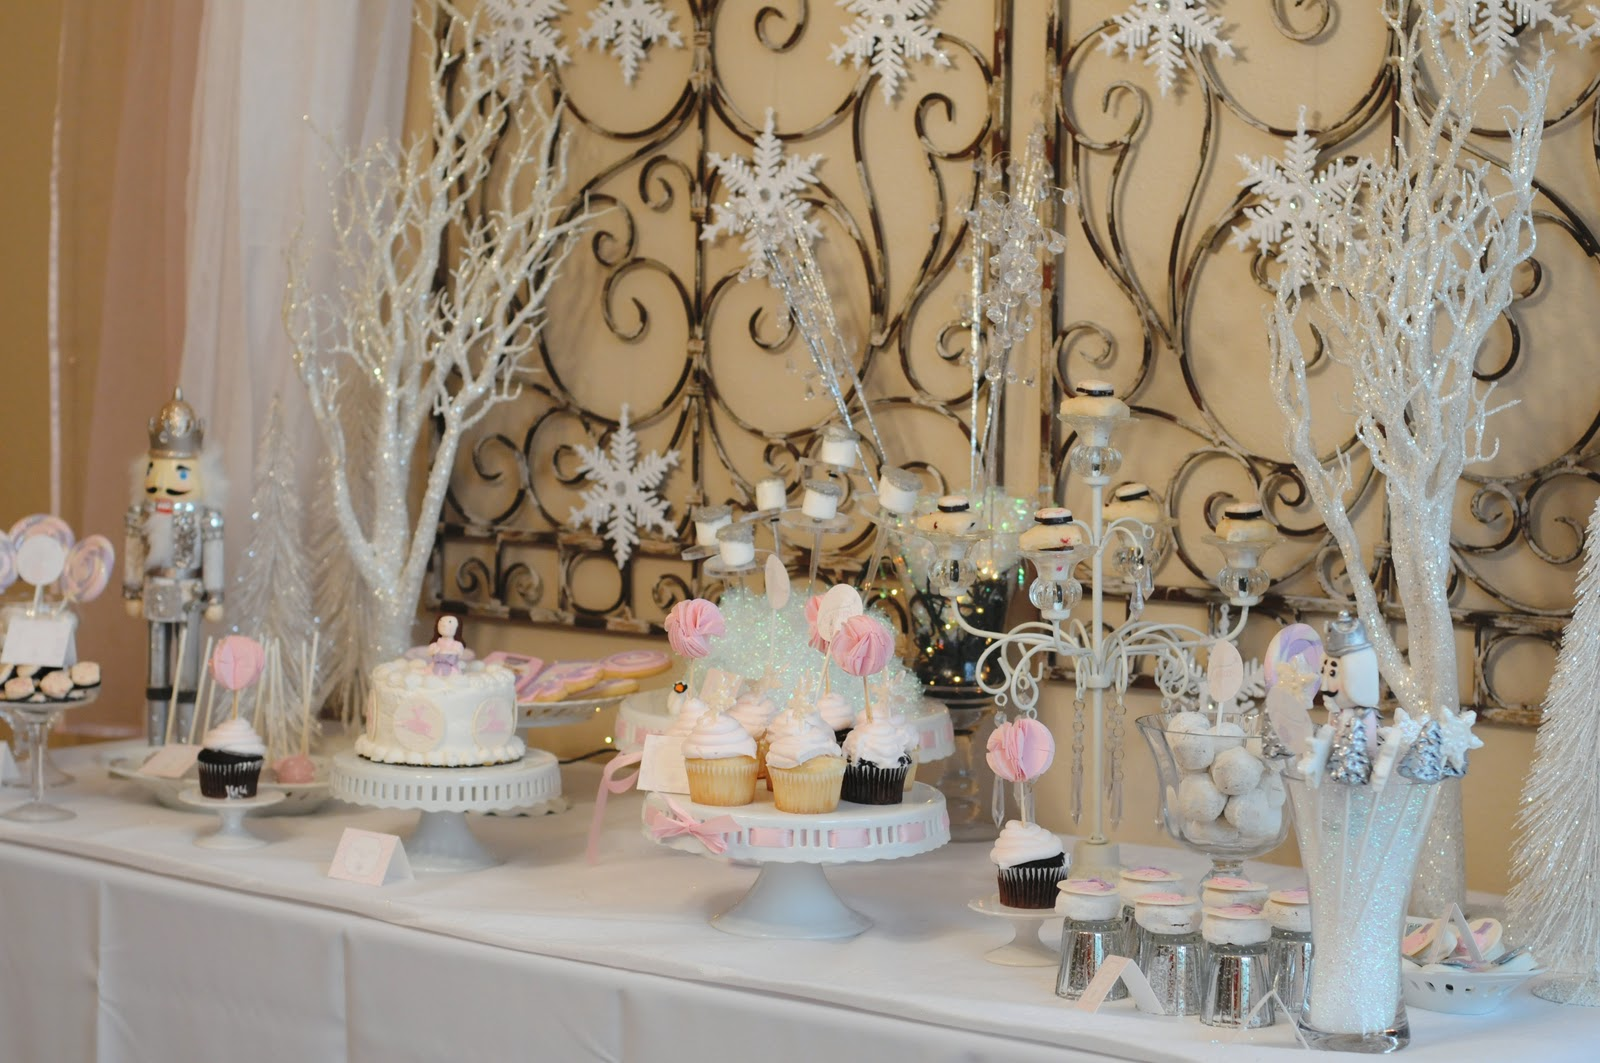 Bathroom Theme Ideas For Adults Fanciful Events Wintry Sugar Plum Nutcracker Wonderland